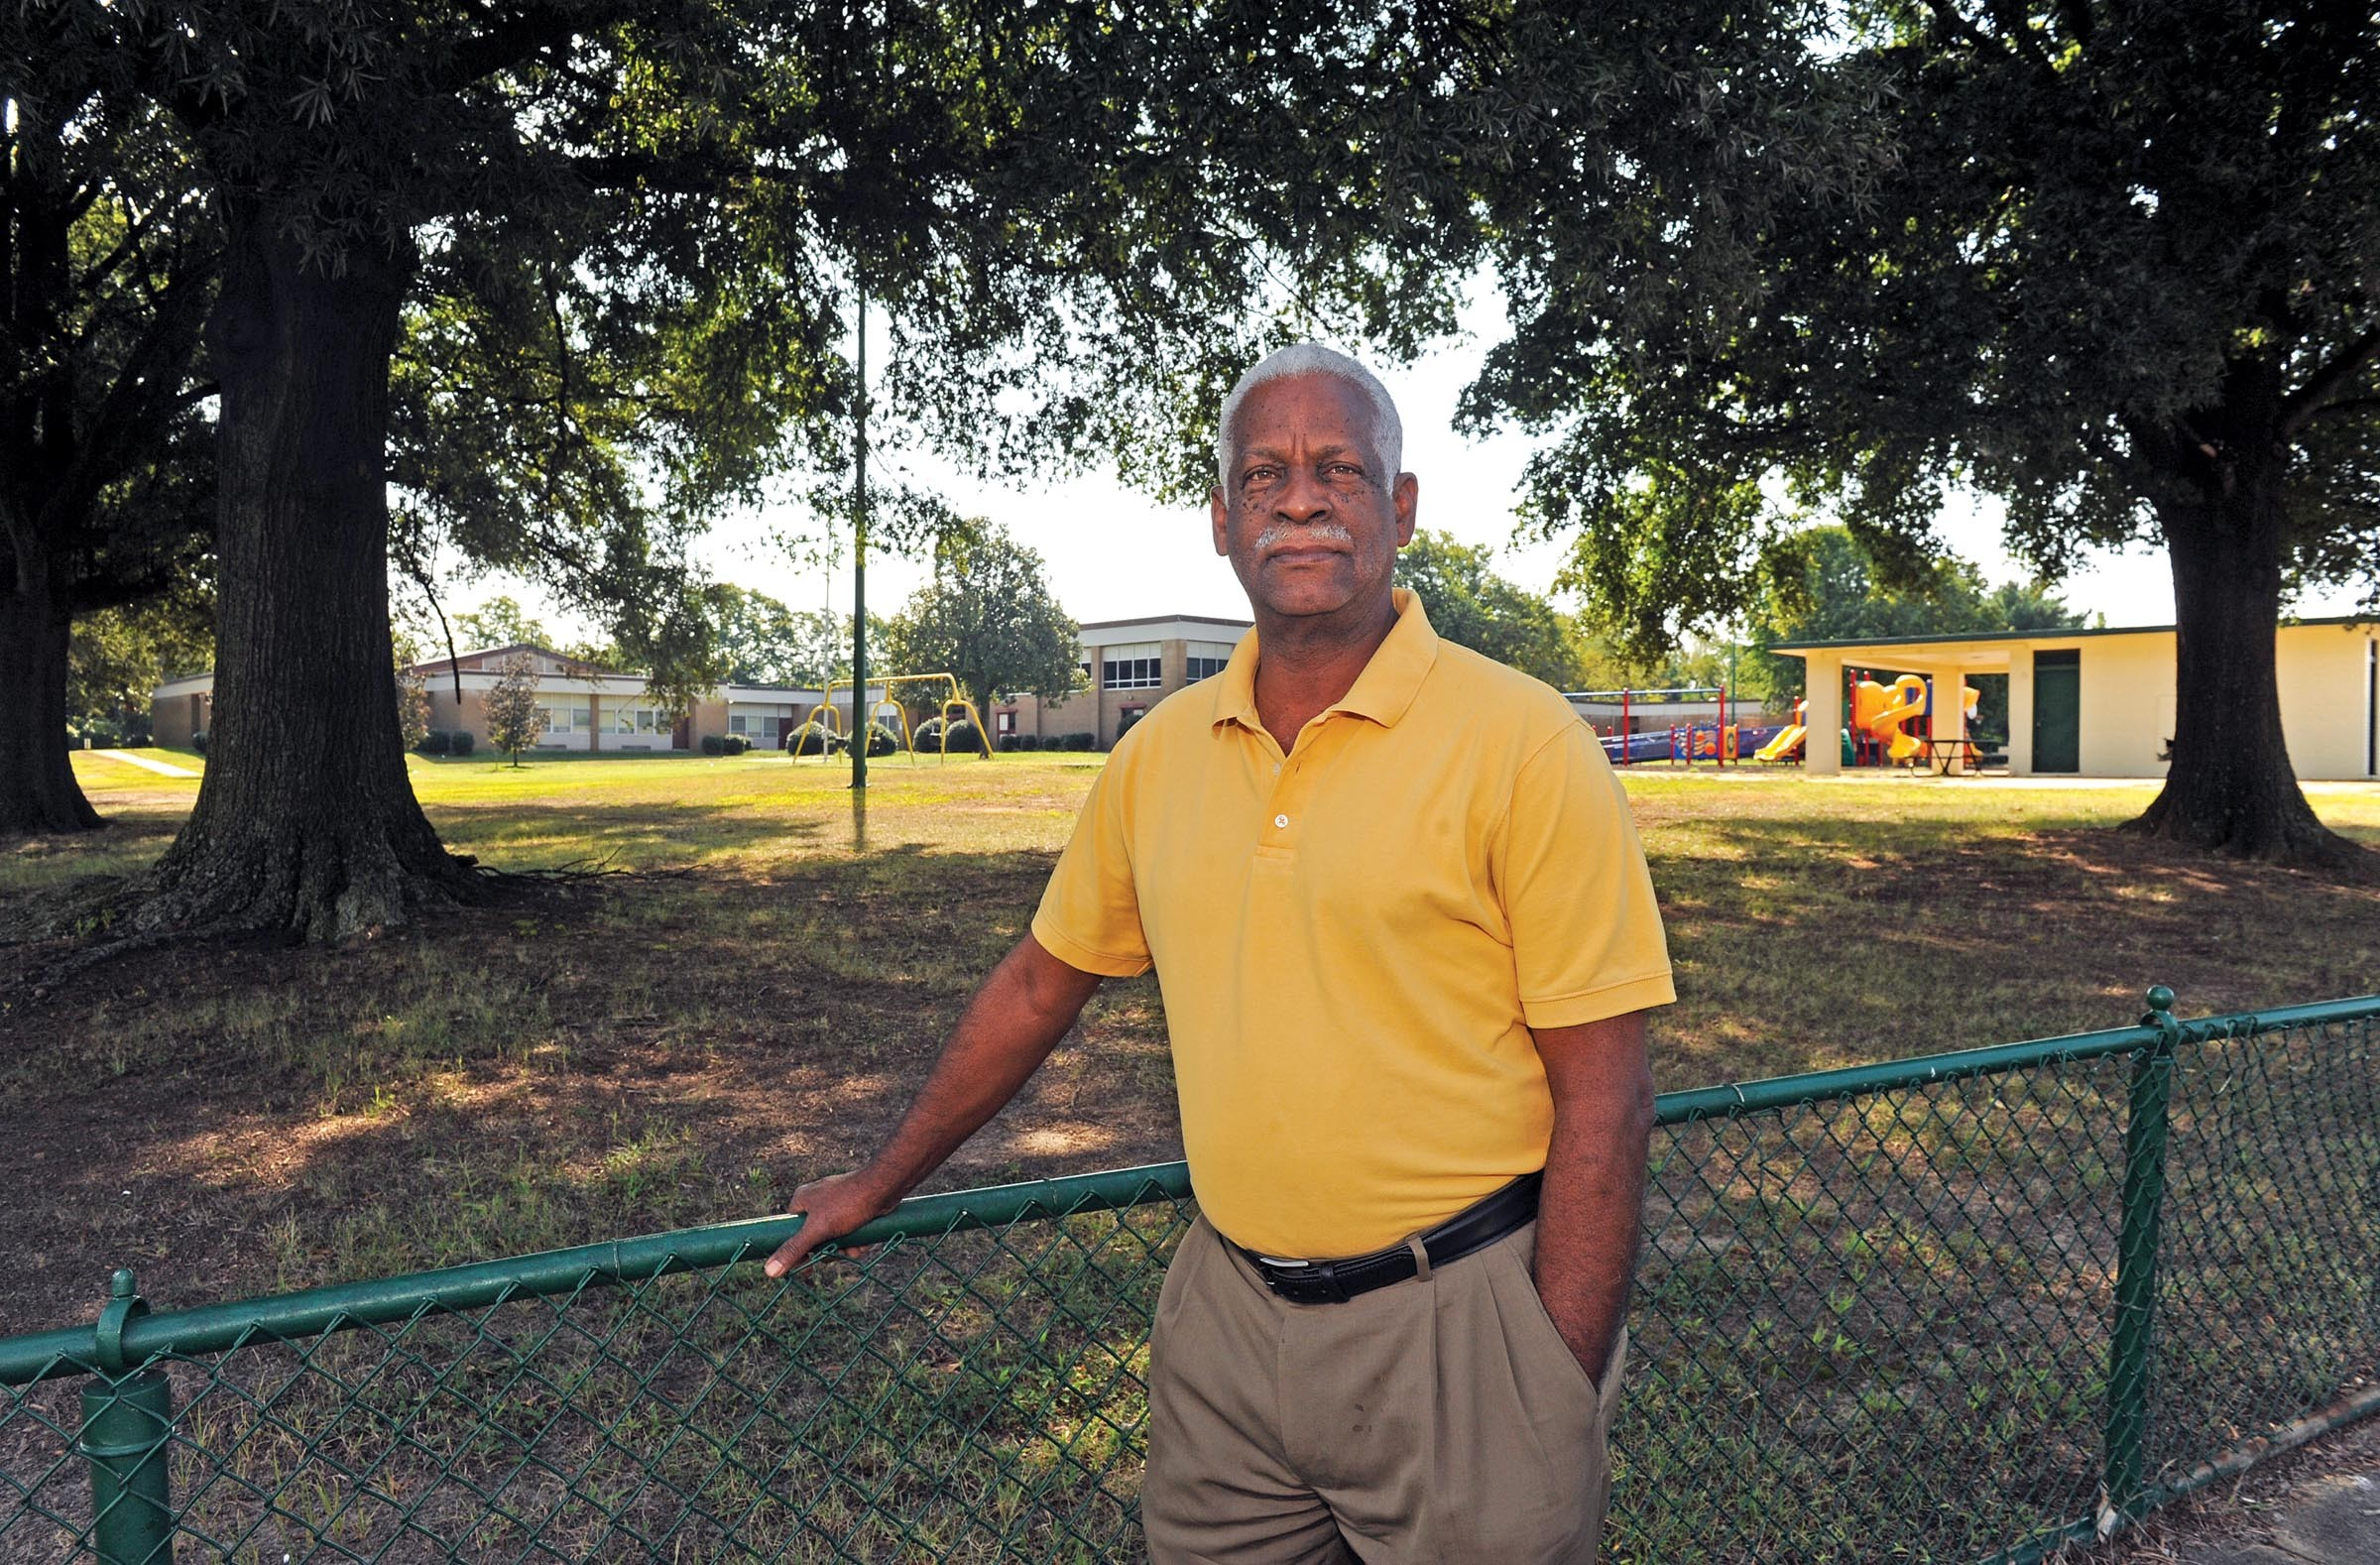 Former Richmond city councilman Marty Jewell, at the closed Clark Springs Elementary School, says the decision to redraw enrollment boundaries is a continuation of the school system's history of undermining integration. - SCOTT ELMQUIST